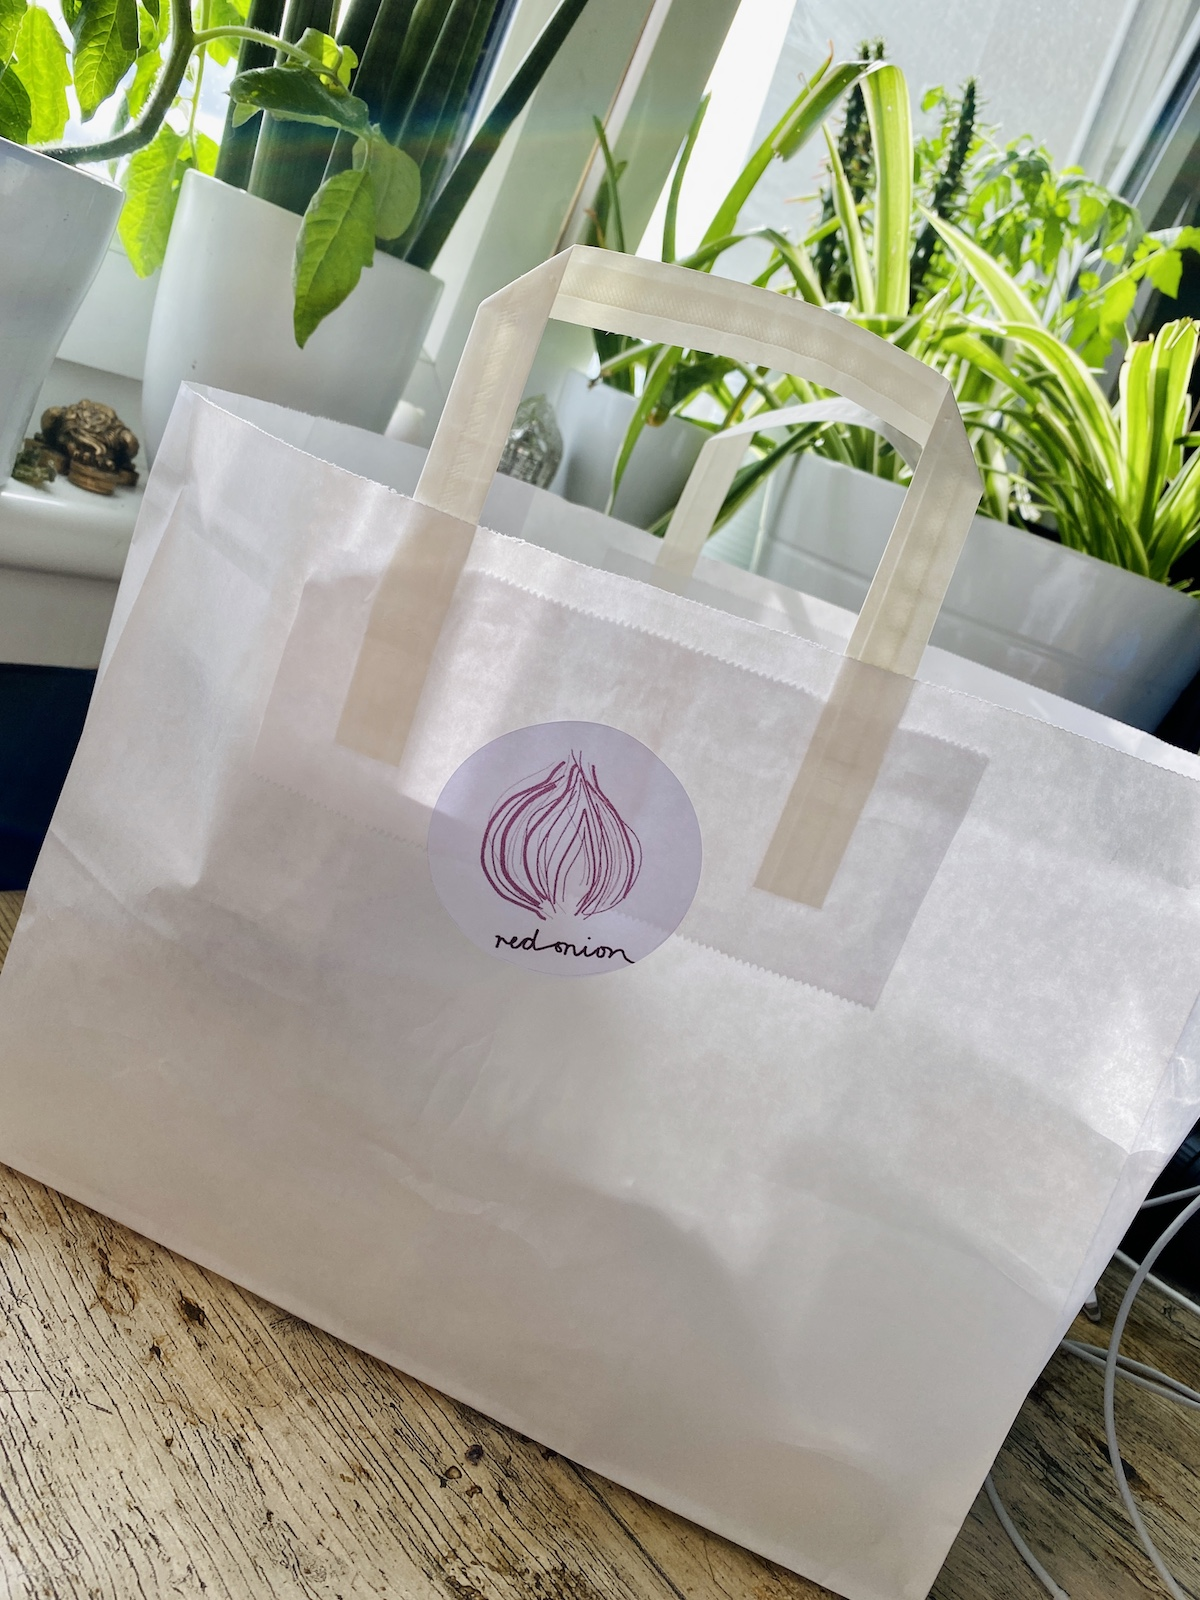 red onion itison at home bag